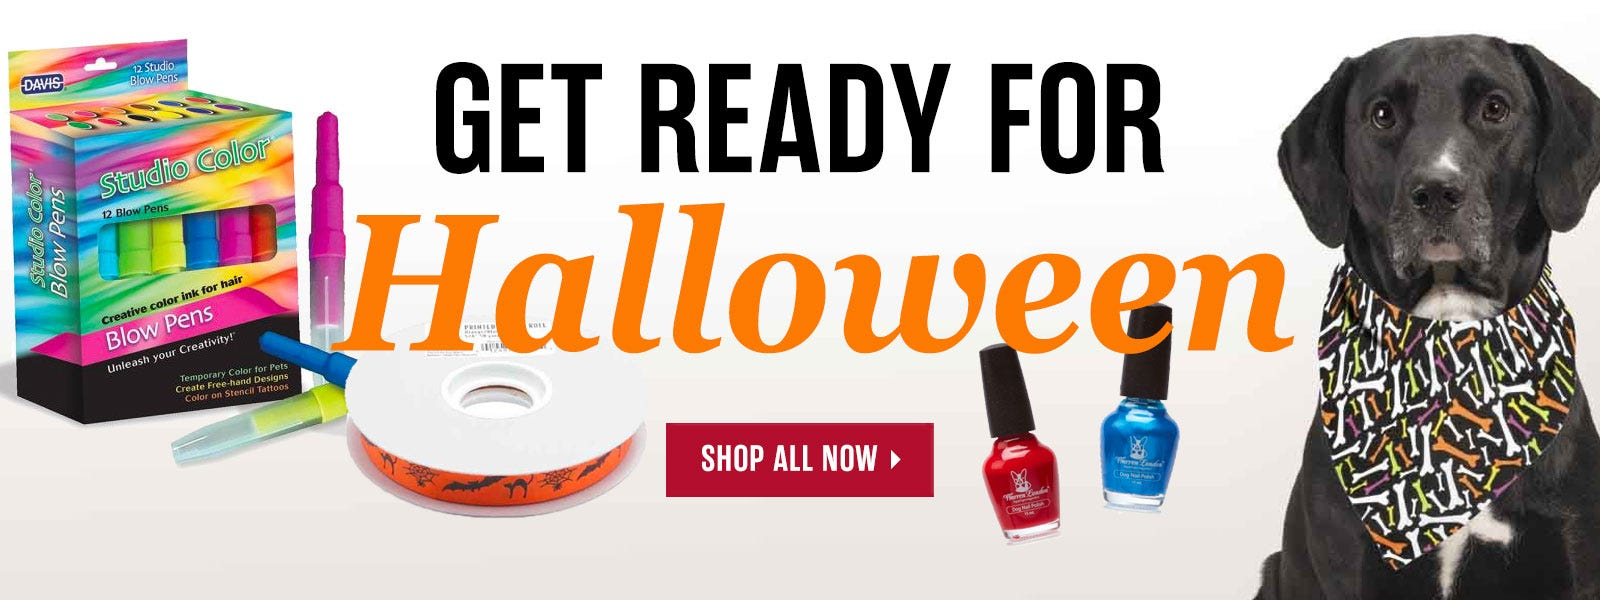 Get Ready for Halloween with best selling dog products for Halloween